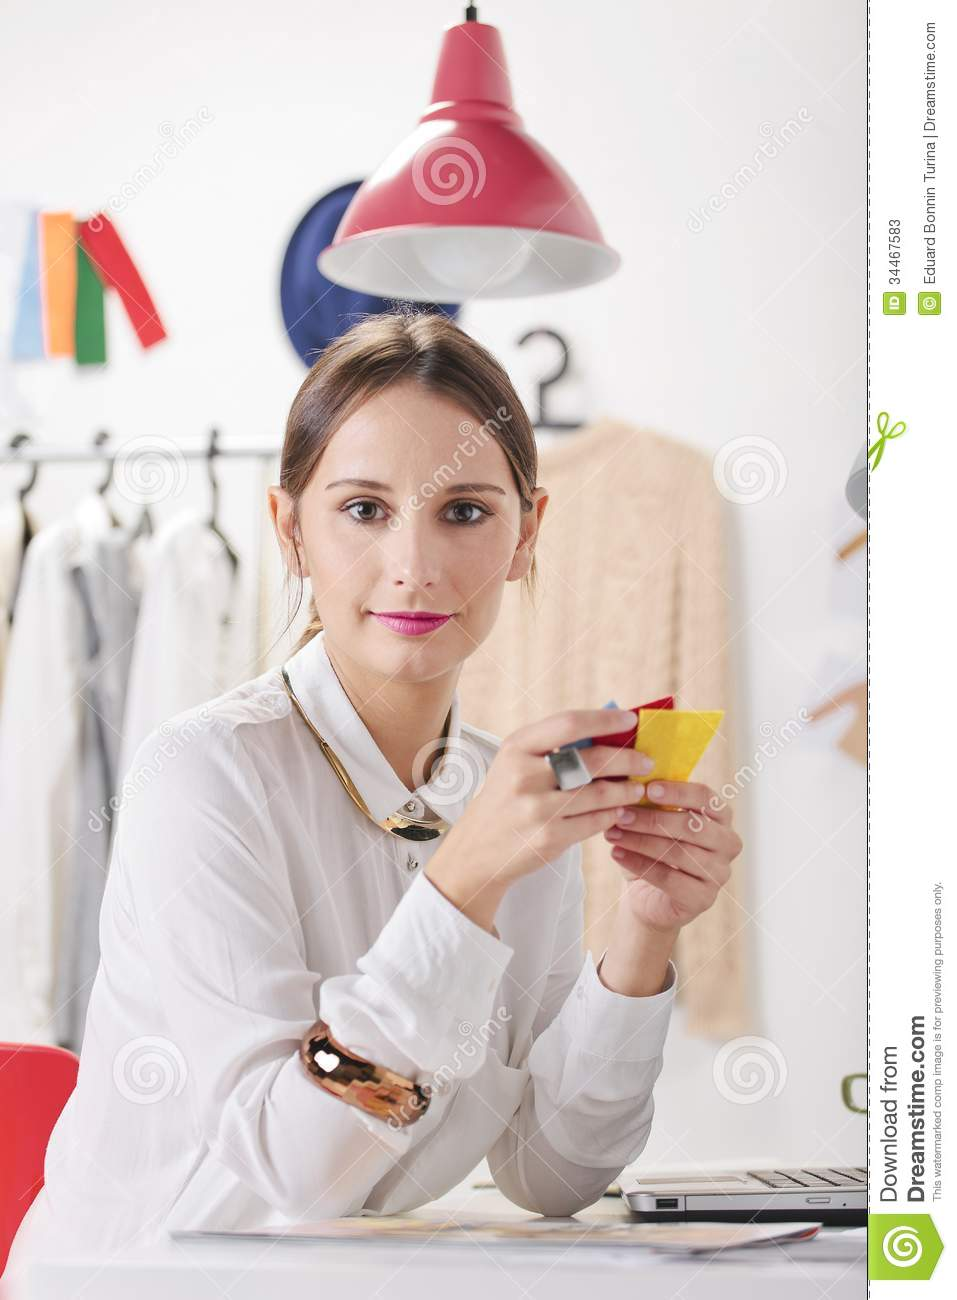 Fashion woman blogger in a creative workspace choosing colors.